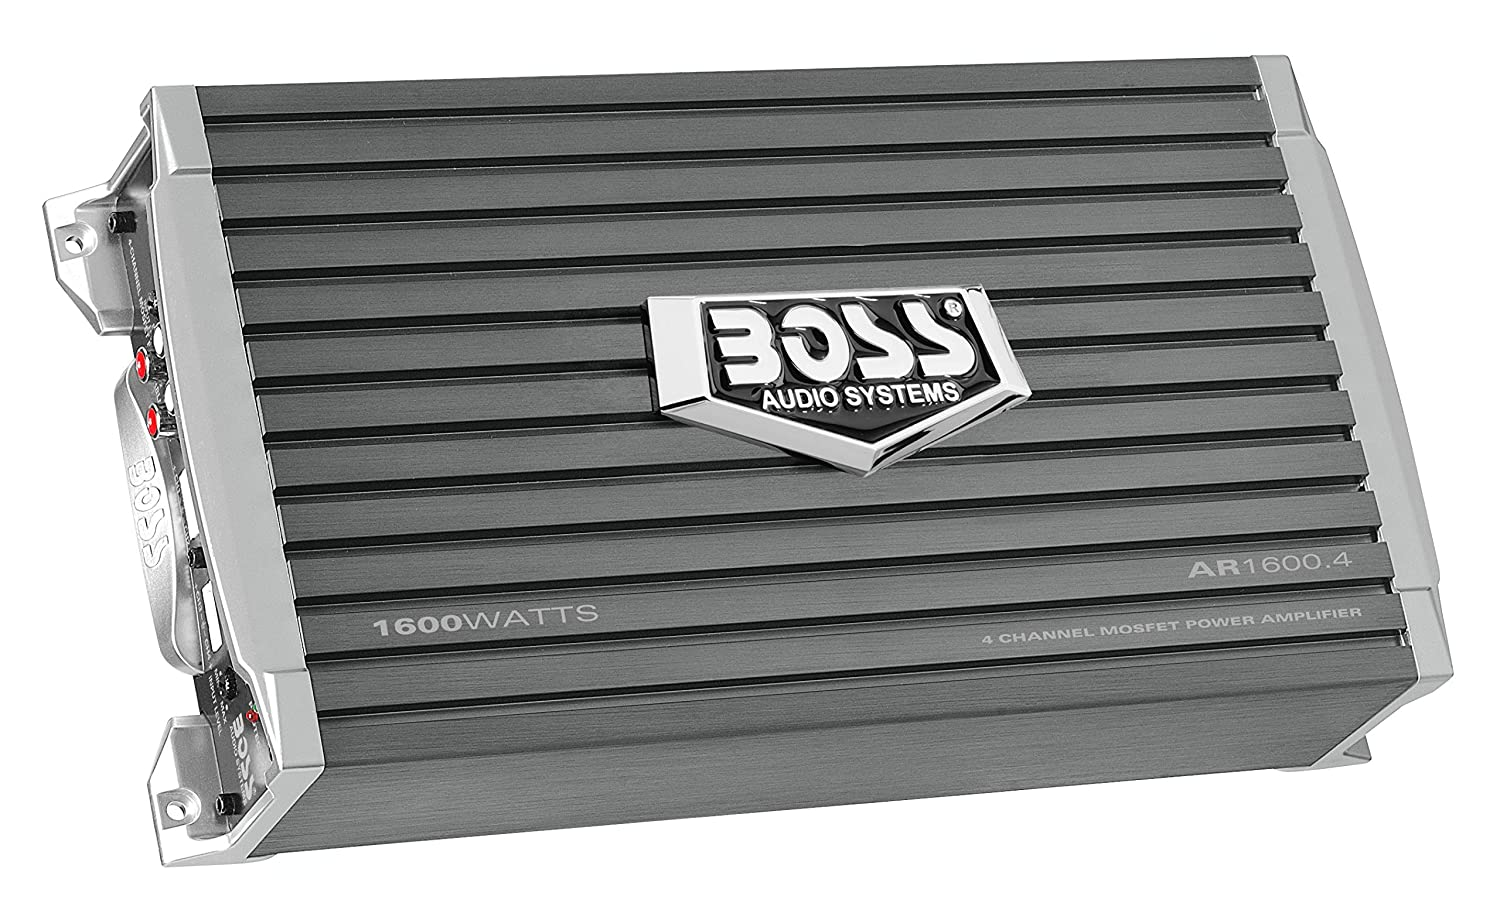 Boss Audio Ar16004 Armor 1600 Watt 4 Channel 2 Ohm Amplifier Stable Class A B Full Range Bridgeable Mosfet Car With Remote Subwoofer